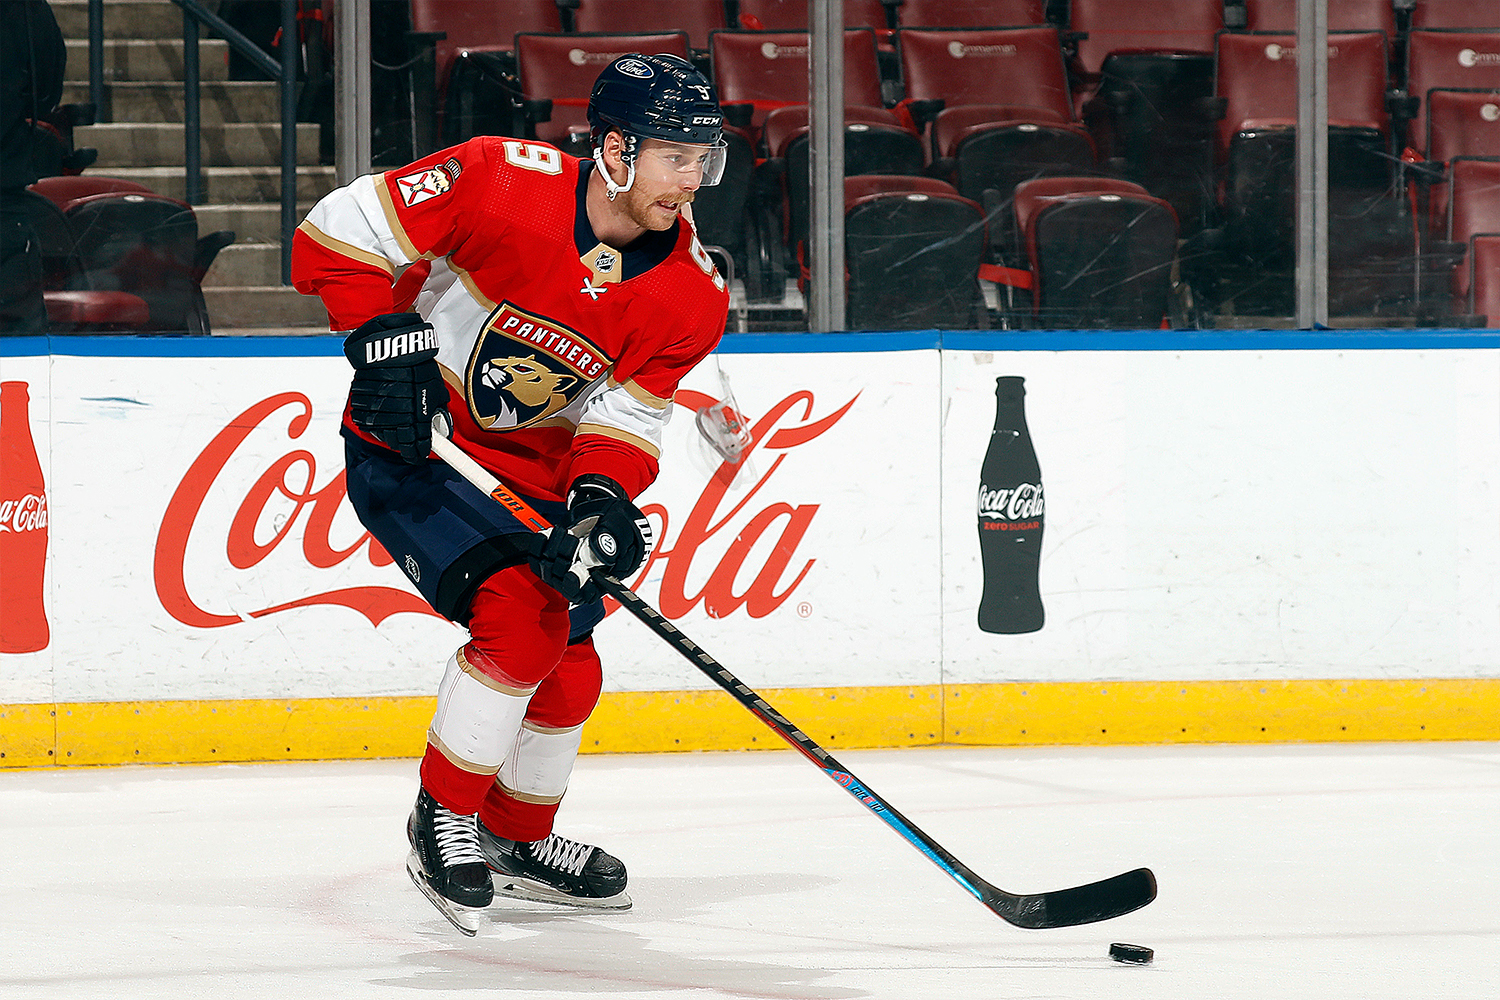 Sam Bennett #9 of the Florida Panthers warms up on the ice prior to the start of the game against the Carolina Hurricanes at the BB&T Center on April 22